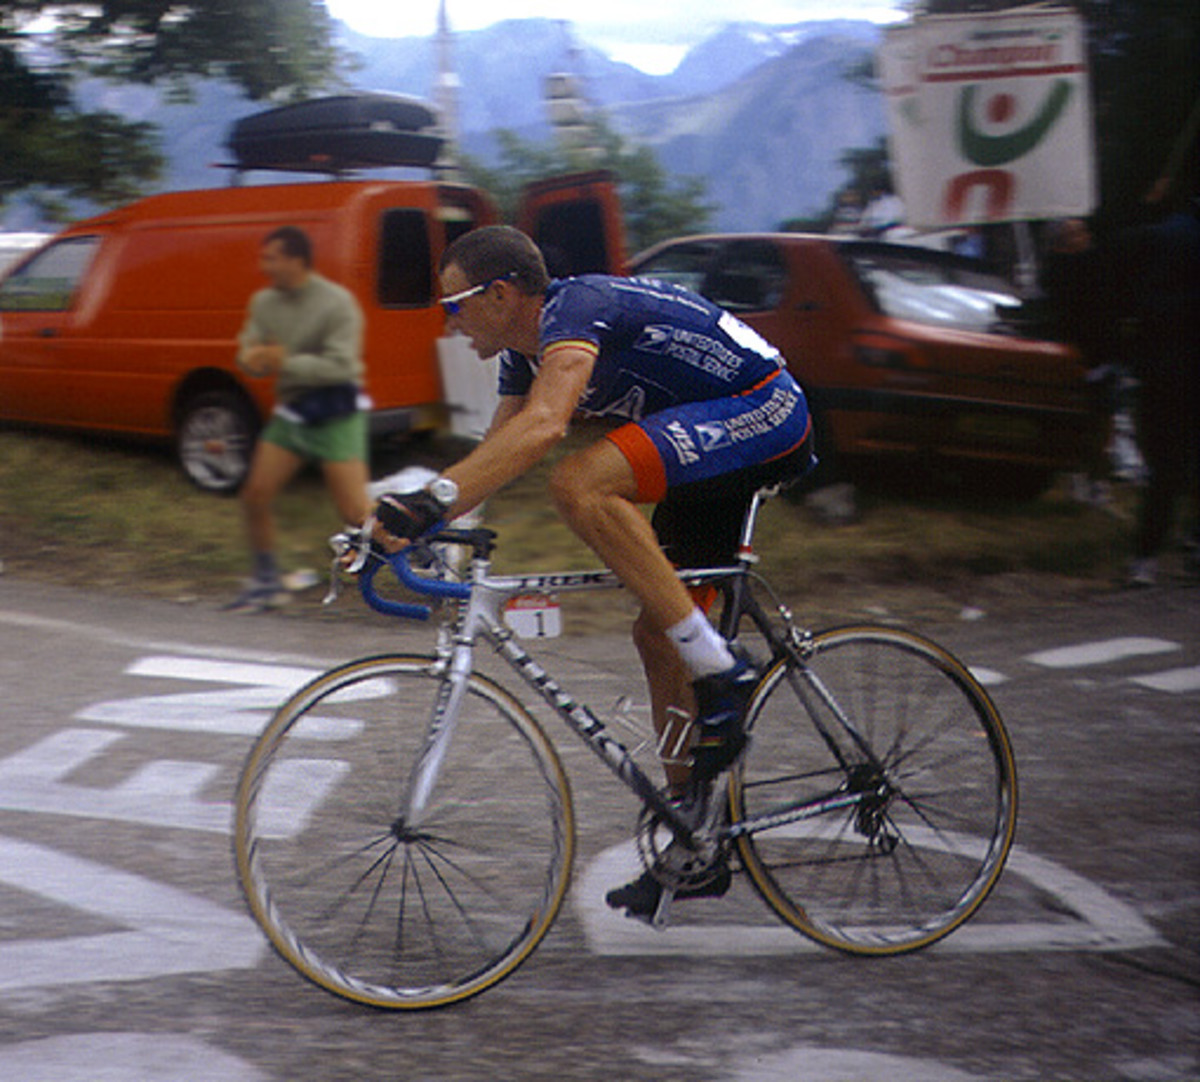 Lance Armstrong riding to victory at L'Alpe d'Huez, during stage 10 of the 2001 Tour de France in his US Postal team kit